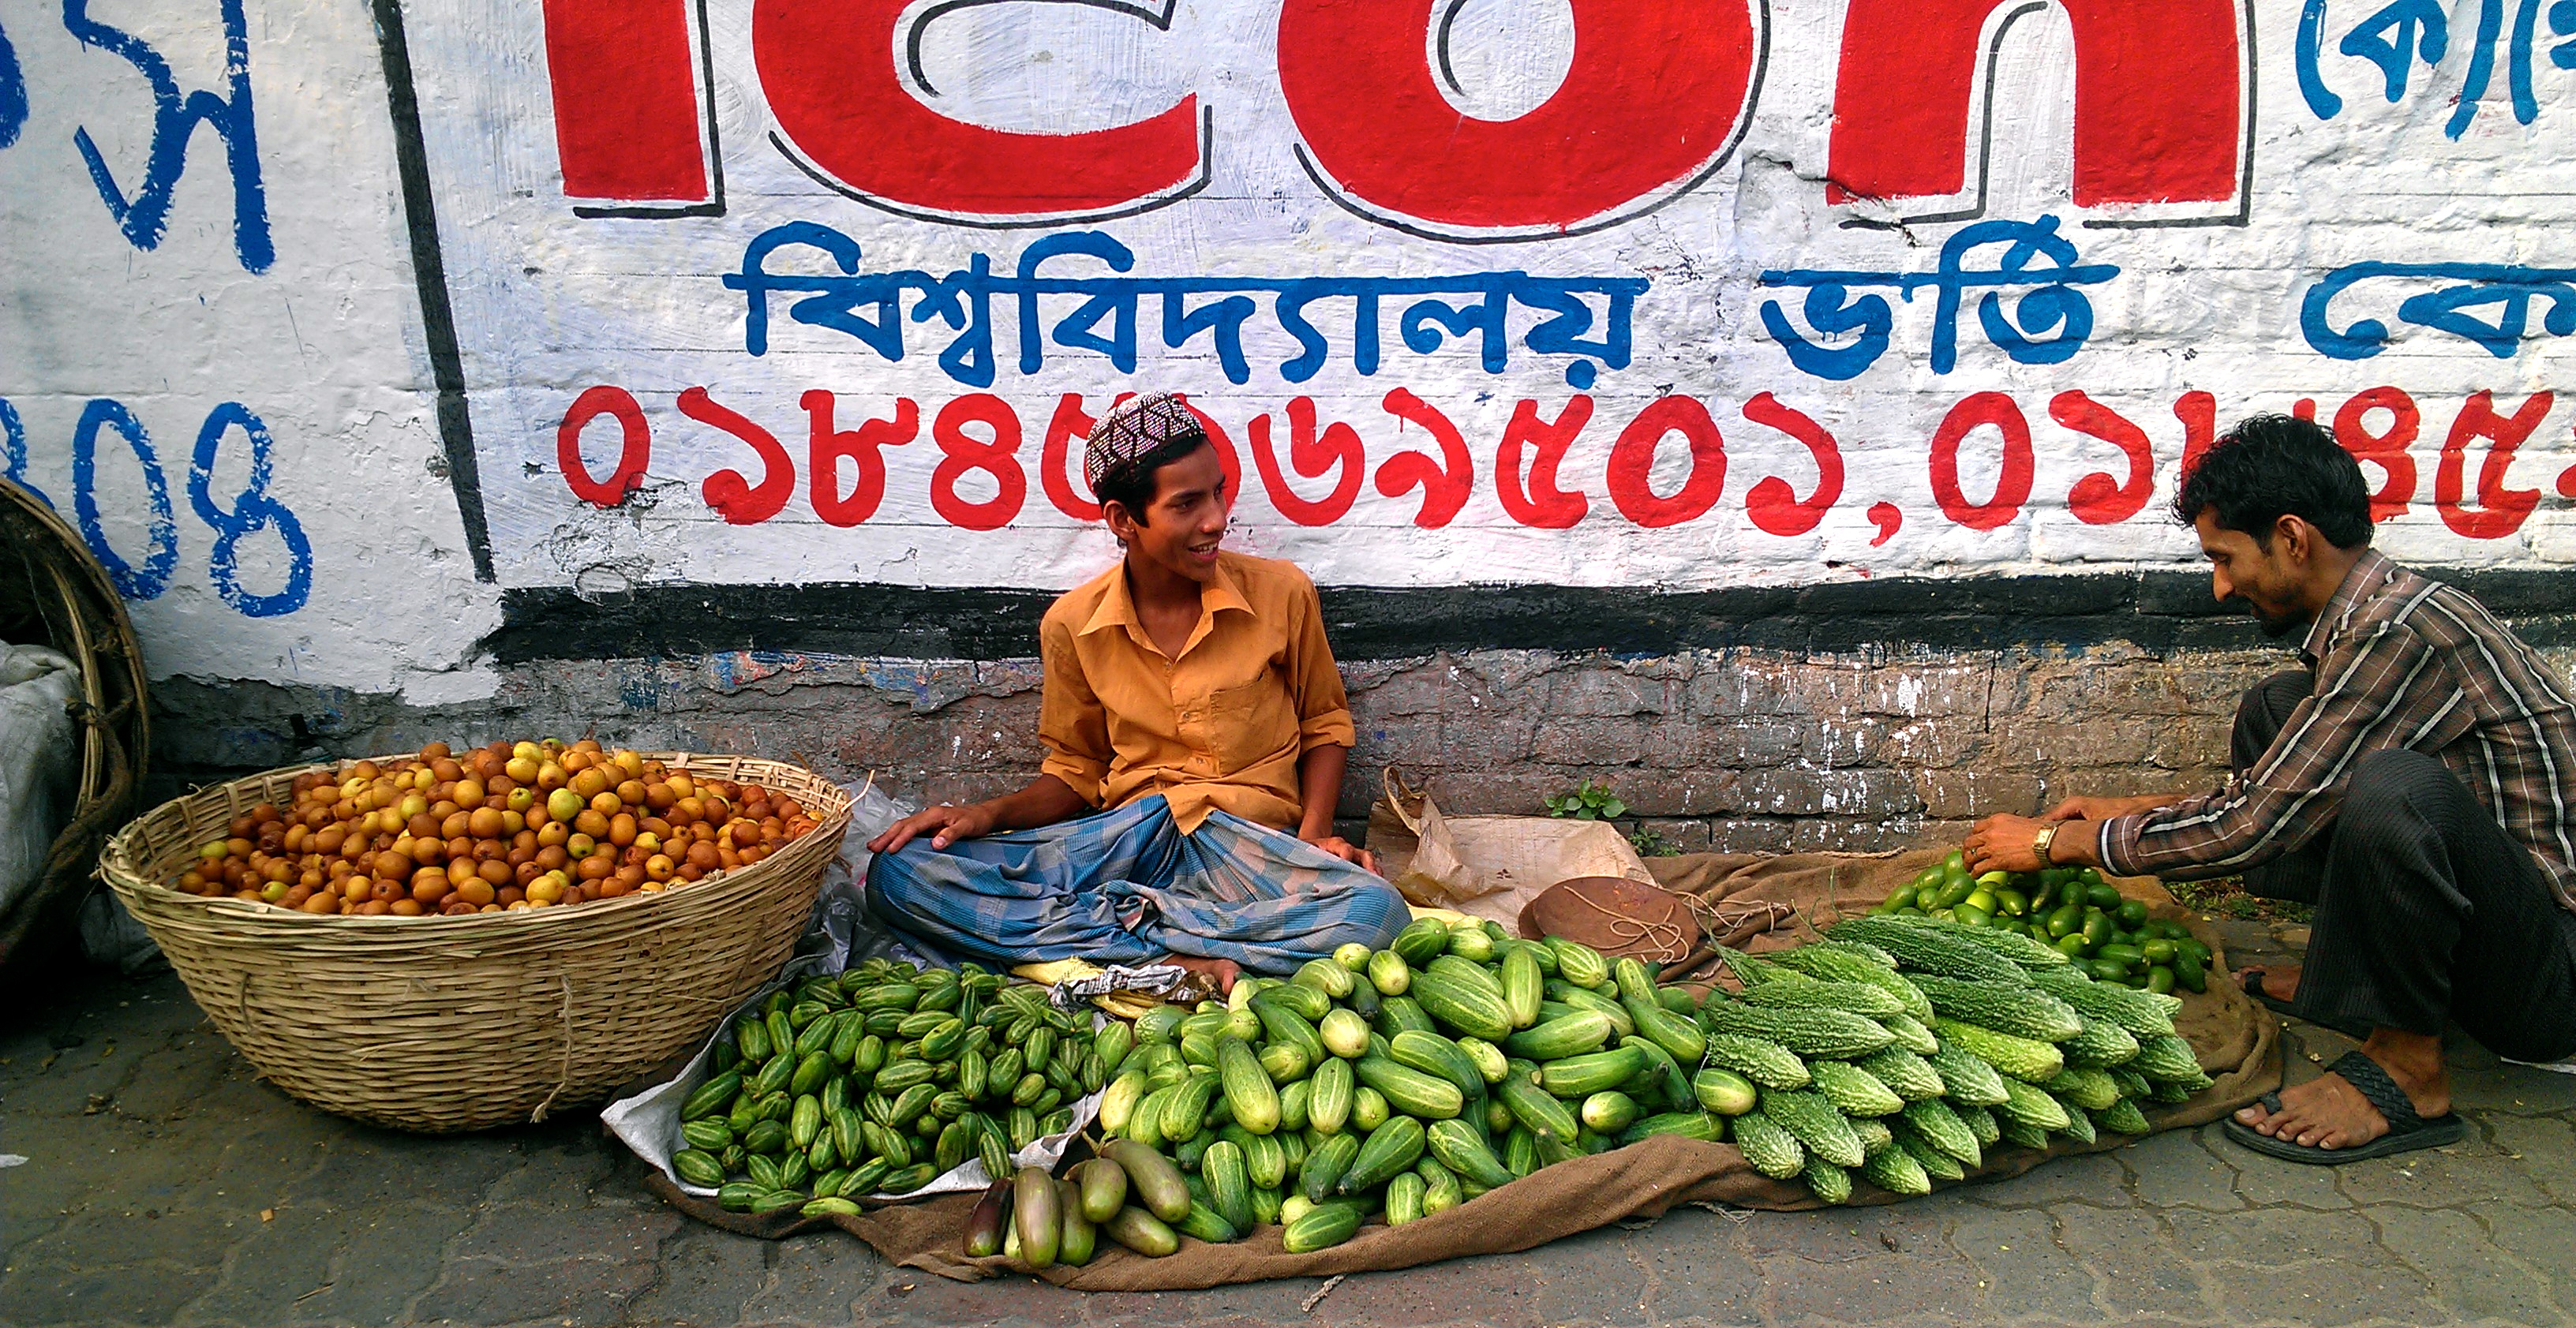 Bangladesh vegetable street vendor